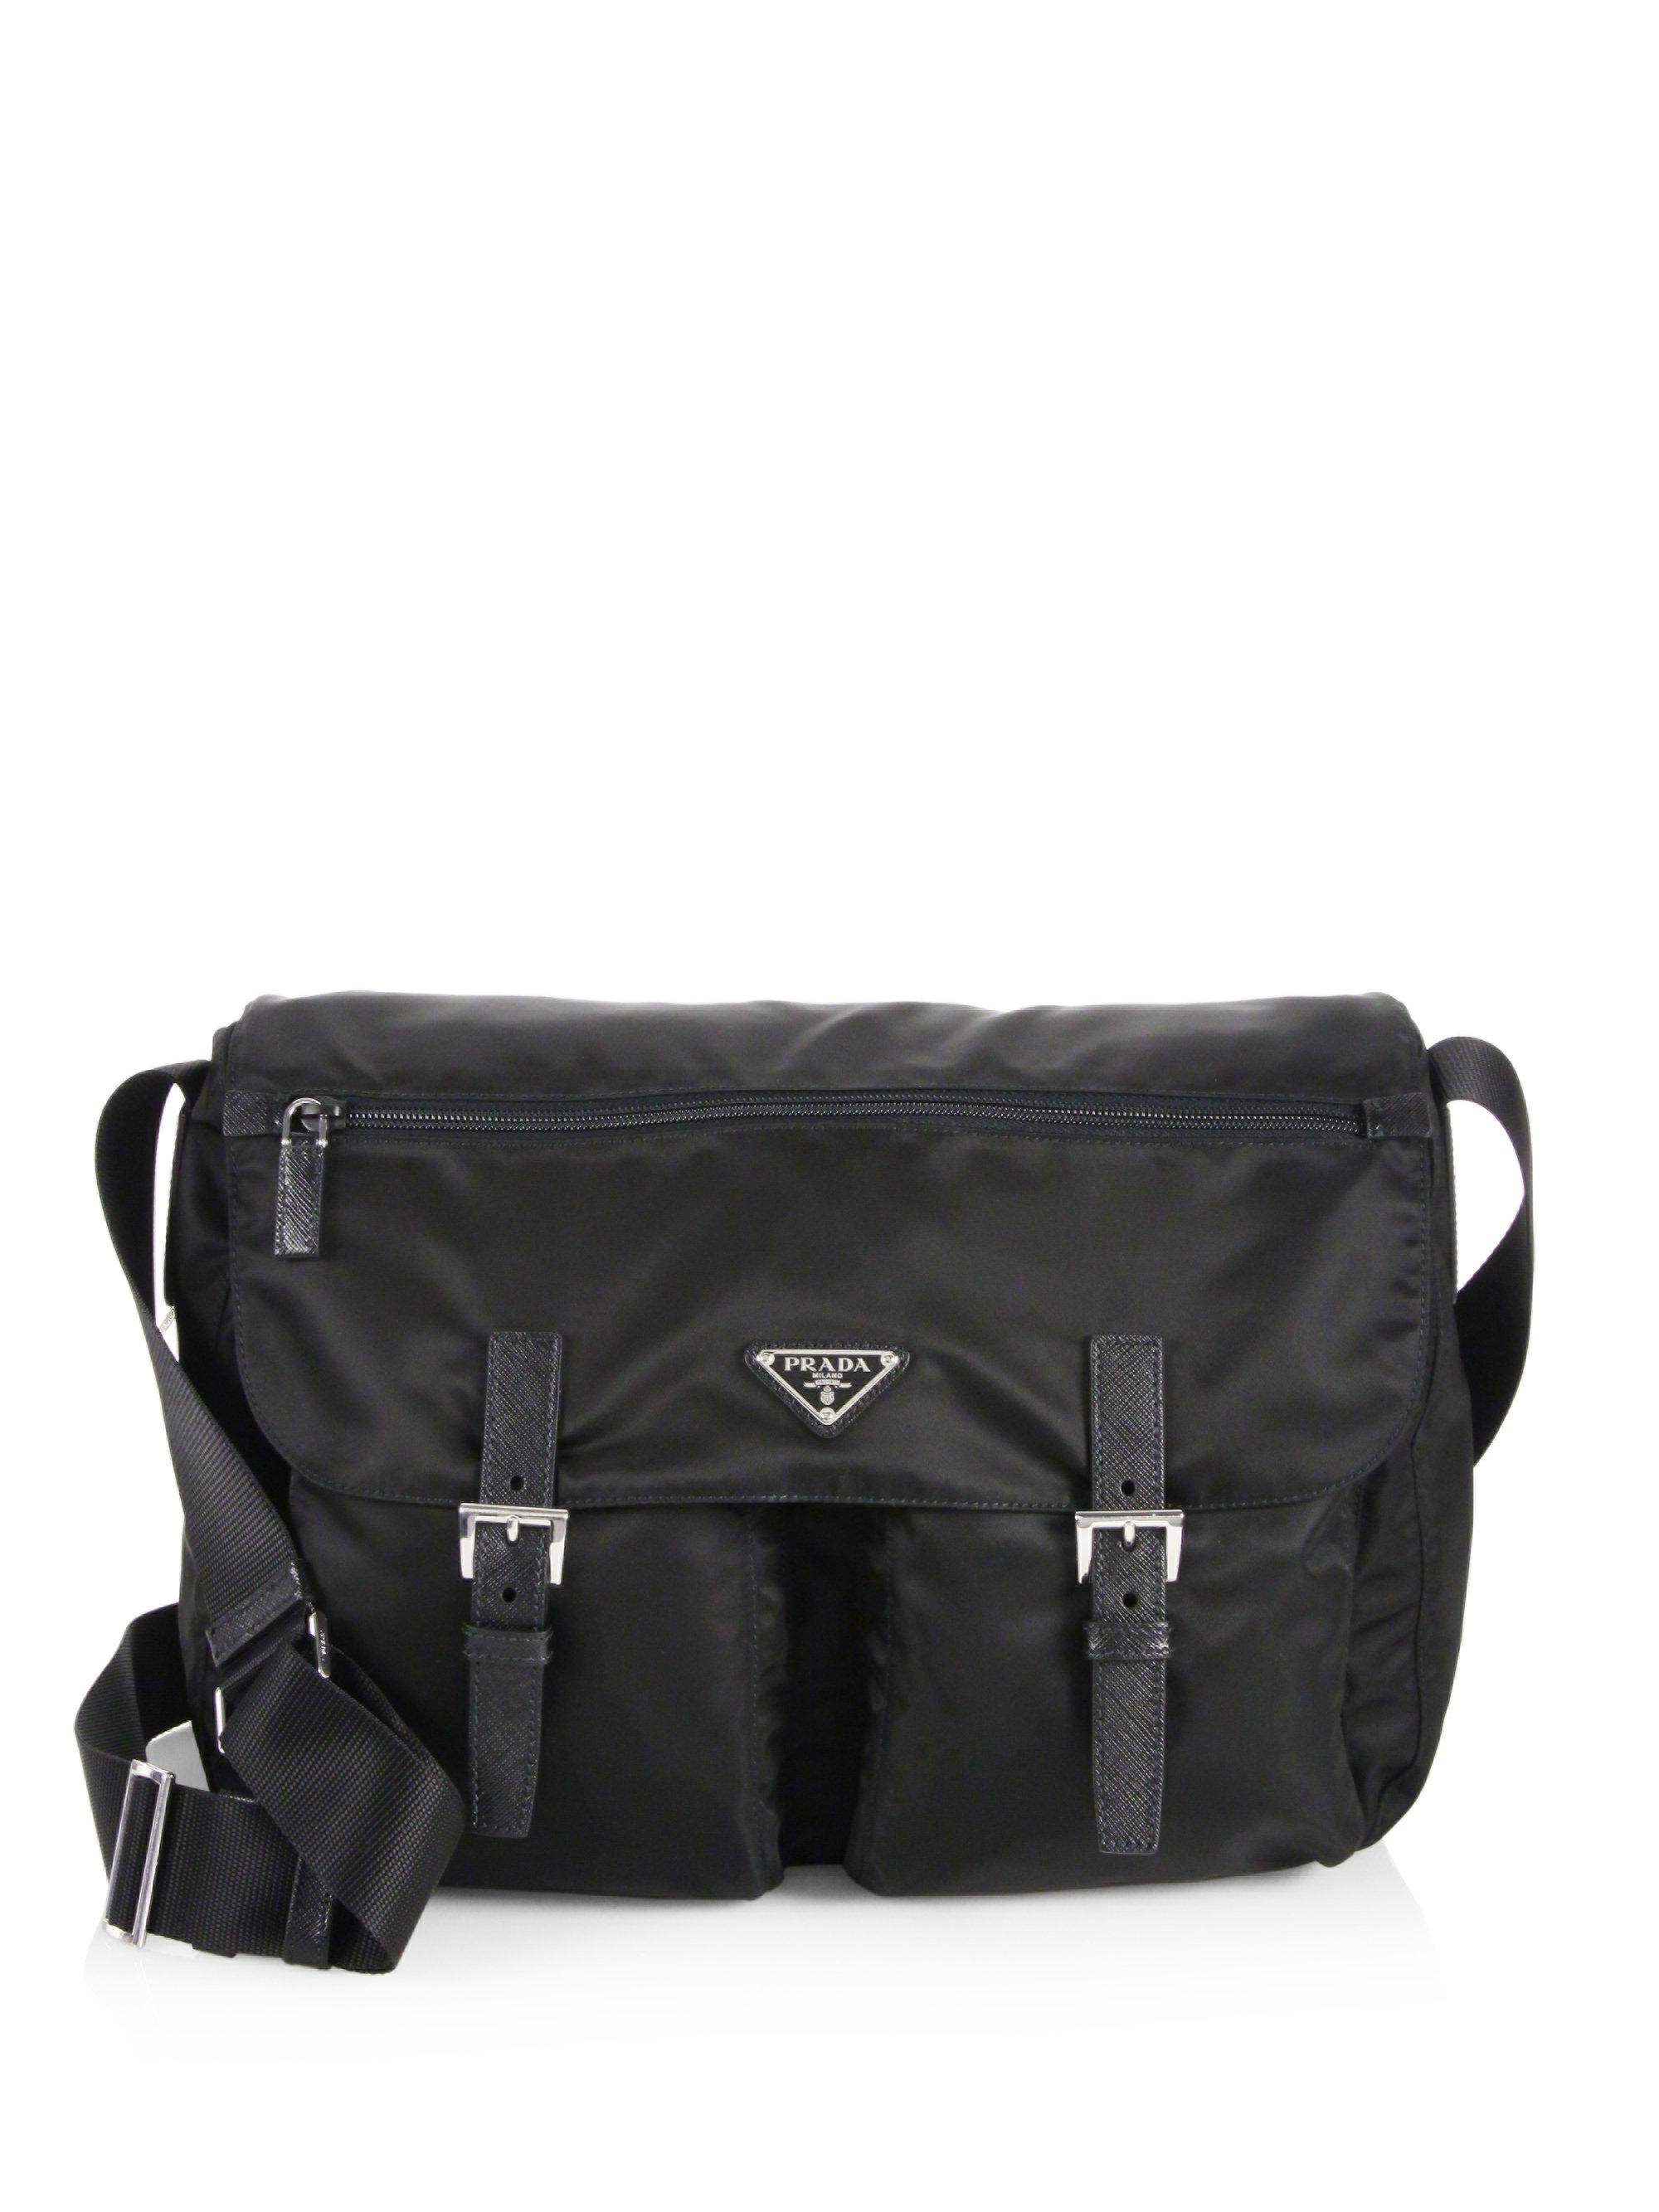 b276924bfd5e26 ... cheapest lyst prada nylon saffiano leather messenger bag in black 0ddcf  13528